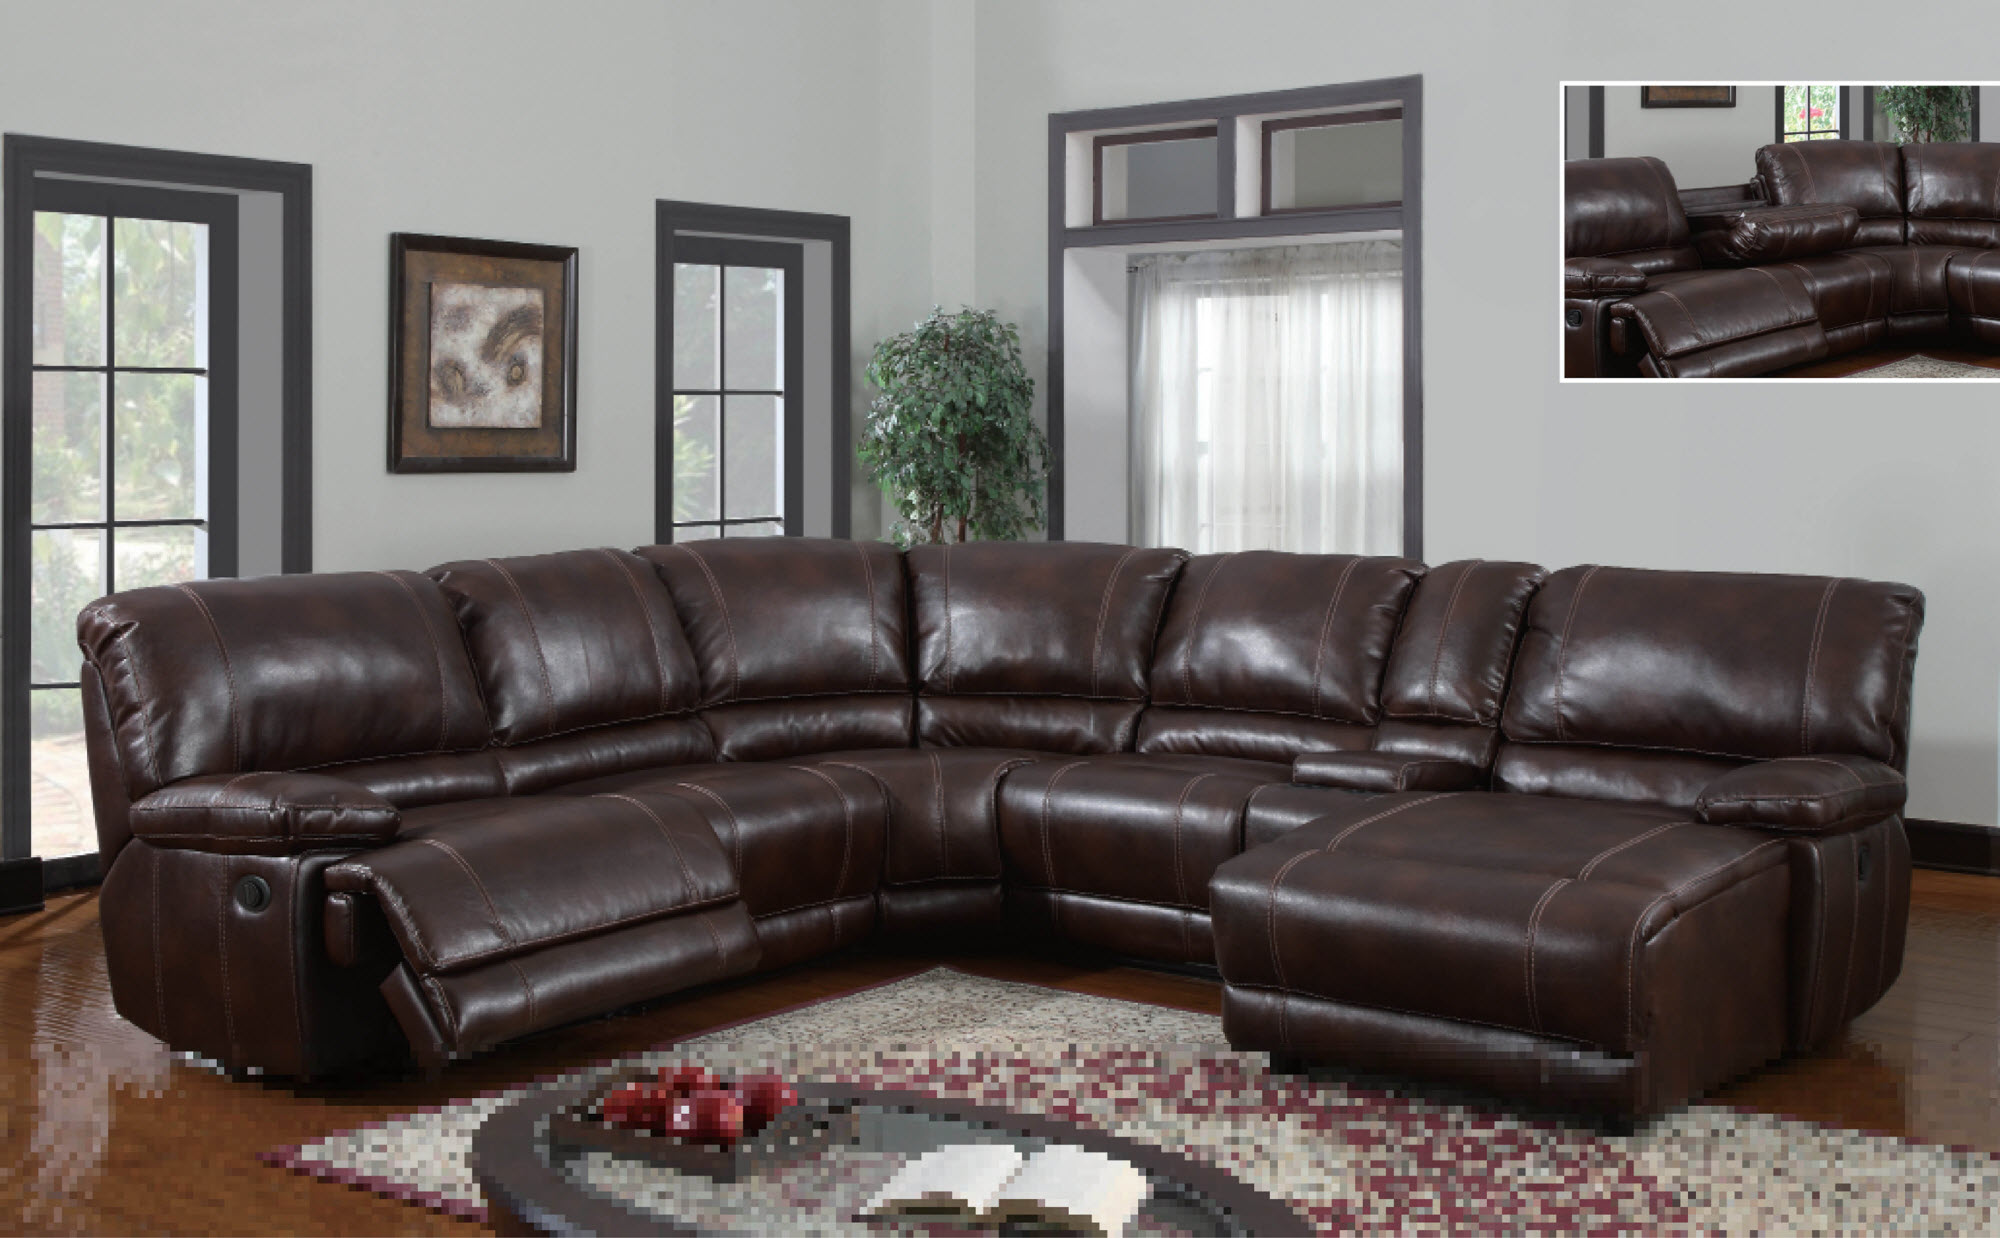 mid tufted furniture spaces high century with for from design size taking small end of scandi in leather frame hardwood upscale living genuine sectional its a bourbon sofa room full chaise inspiration